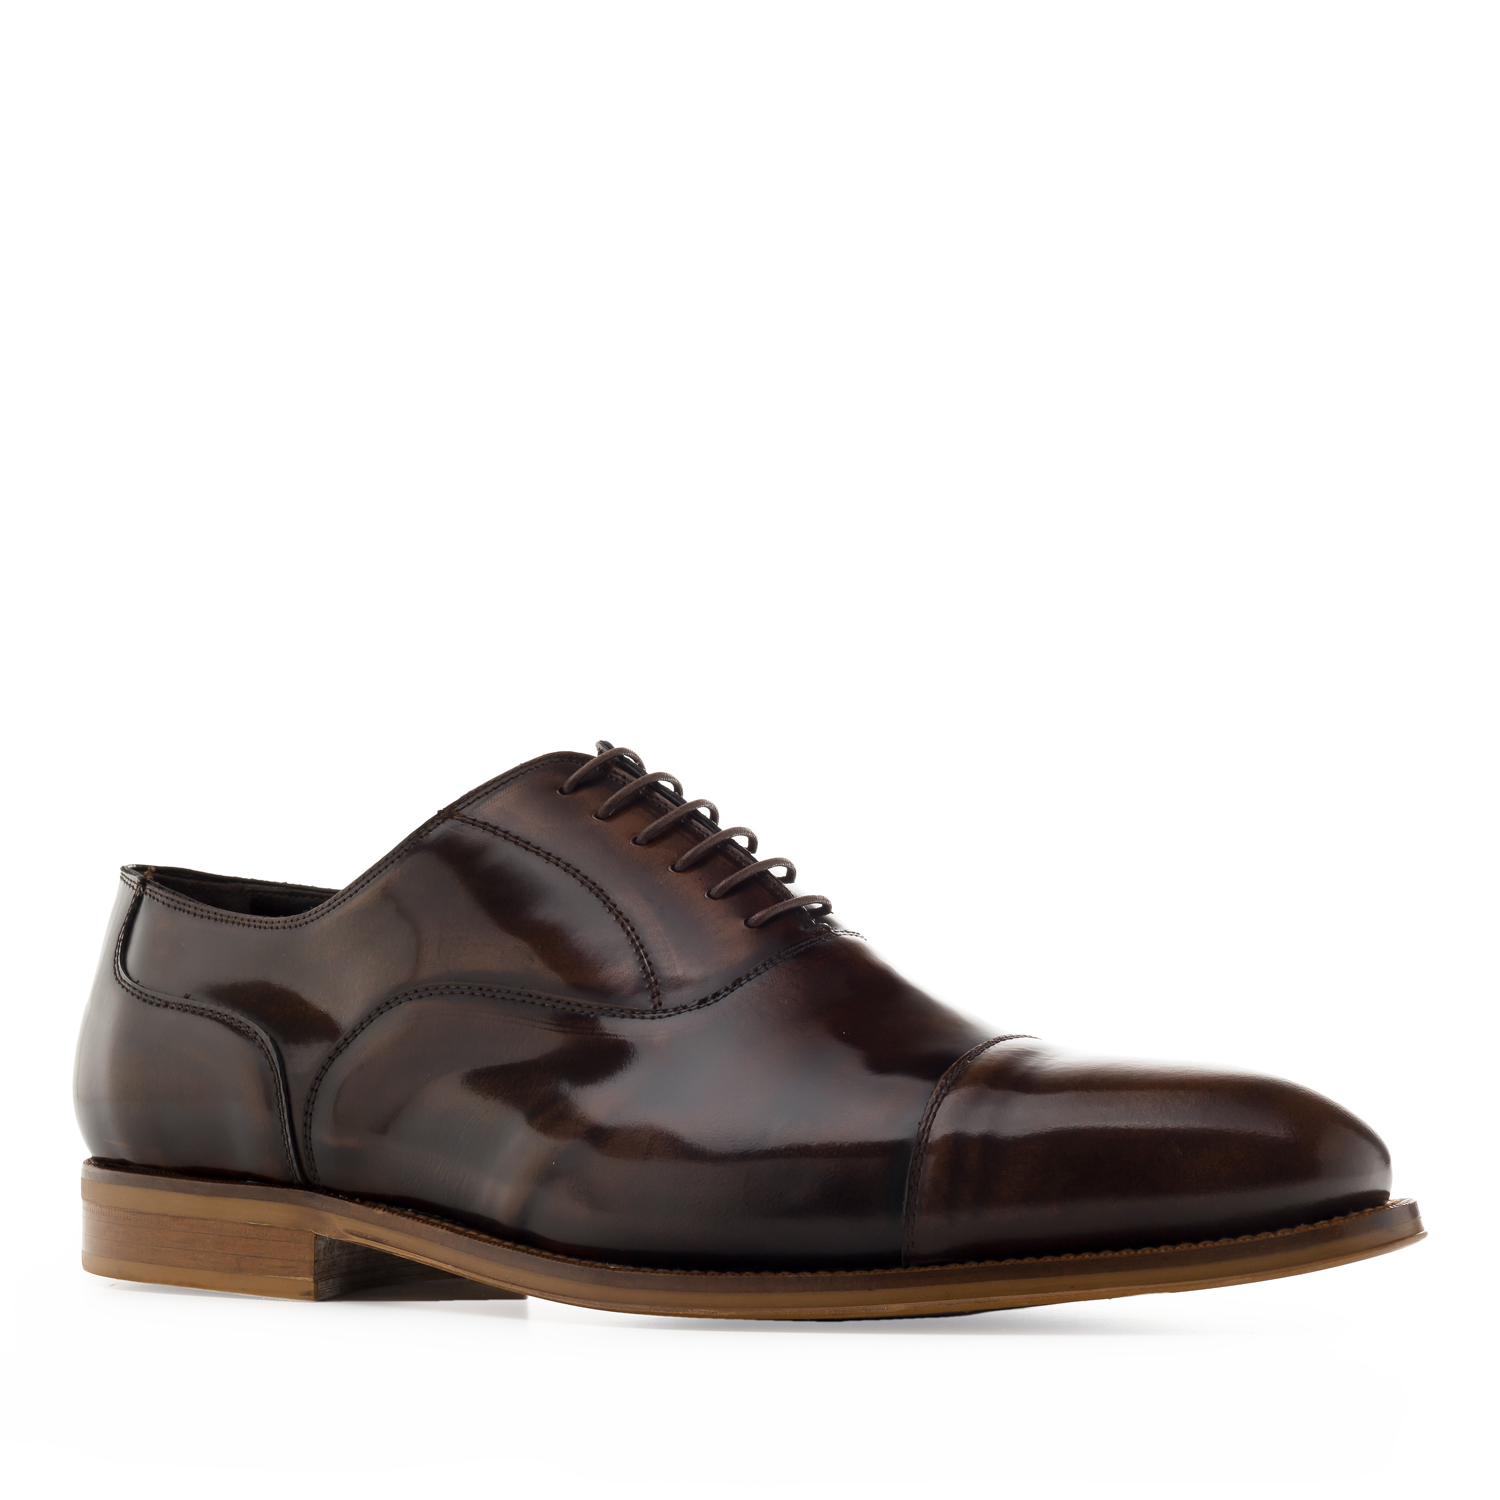 Oxford Shoes in Brown Antik Leather